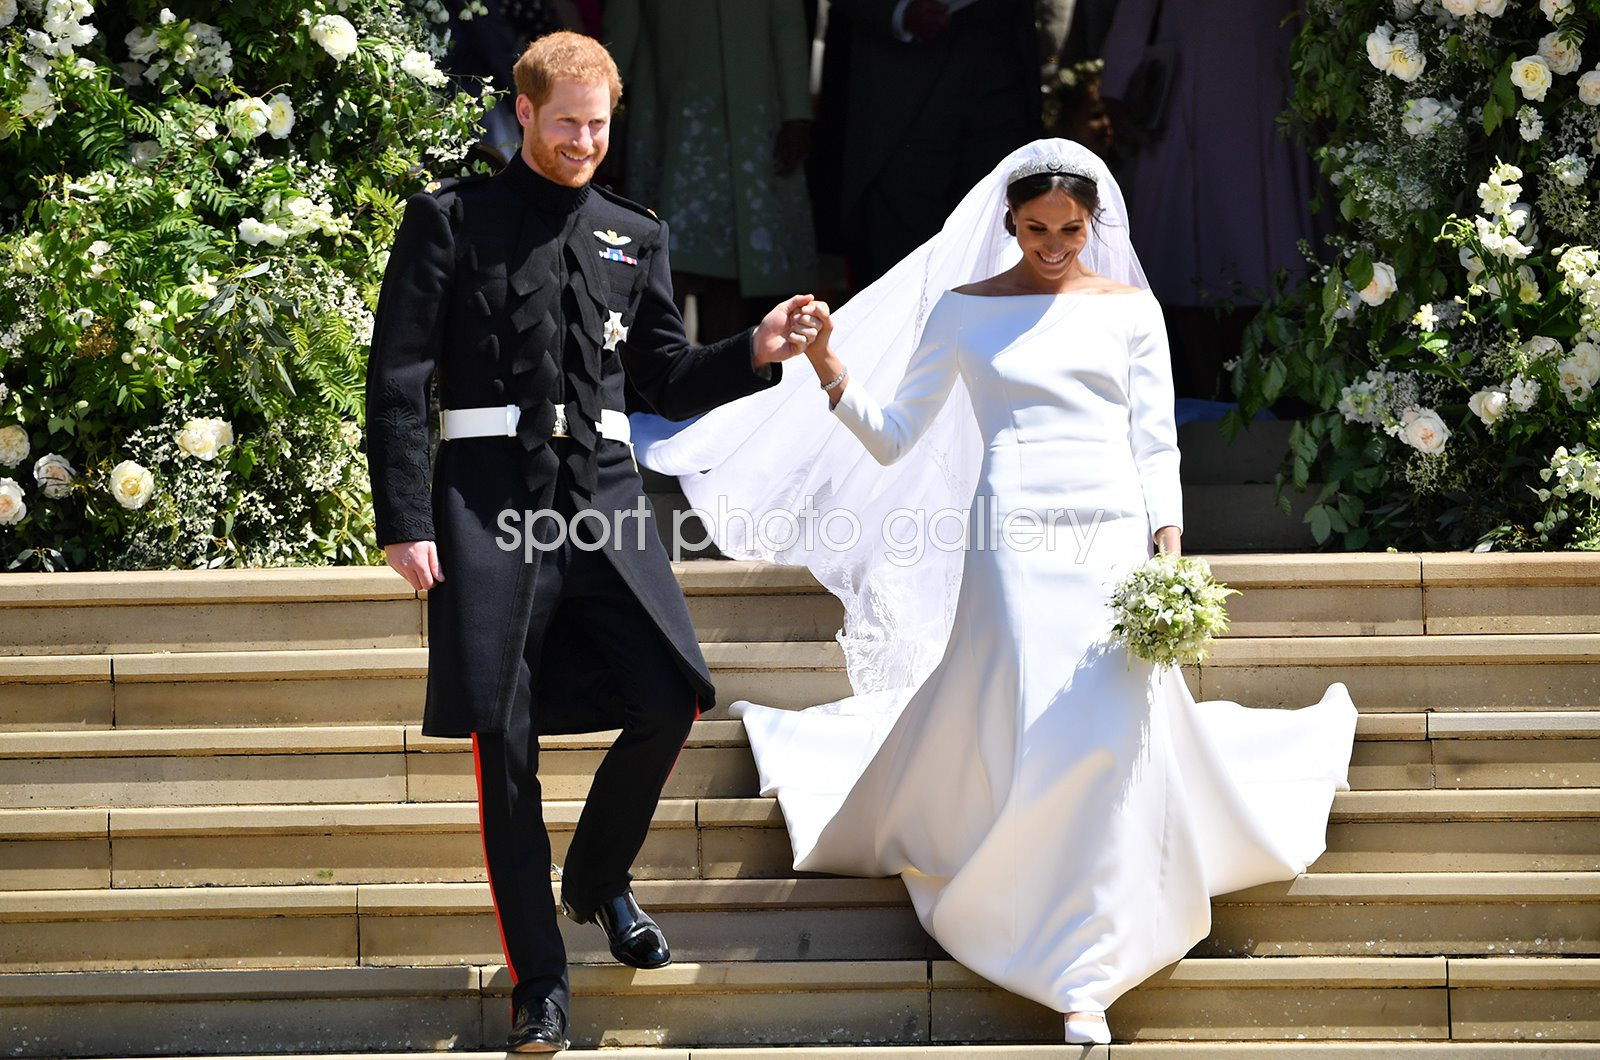 Prince Harry & Meghan Markle St George's Chapel Windsor 2018